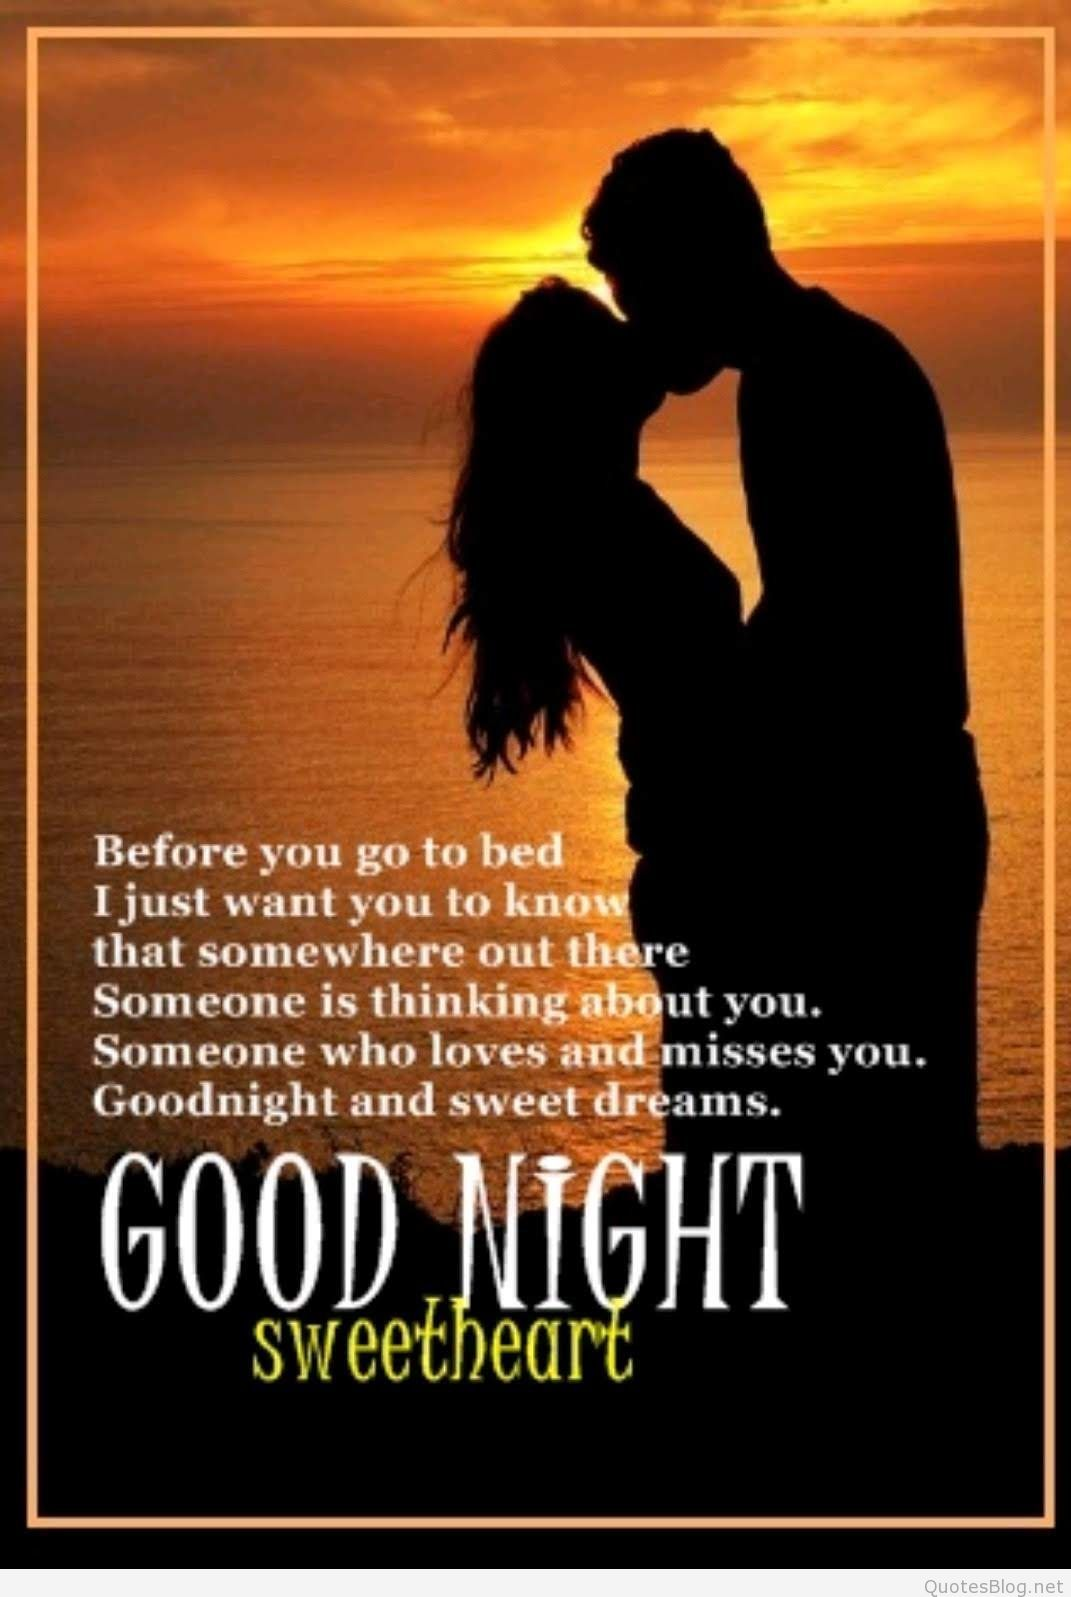 I Love You Always Good Night My Sweet Heart Romance 1778948 Hd Wallpaper Backgrounds Download